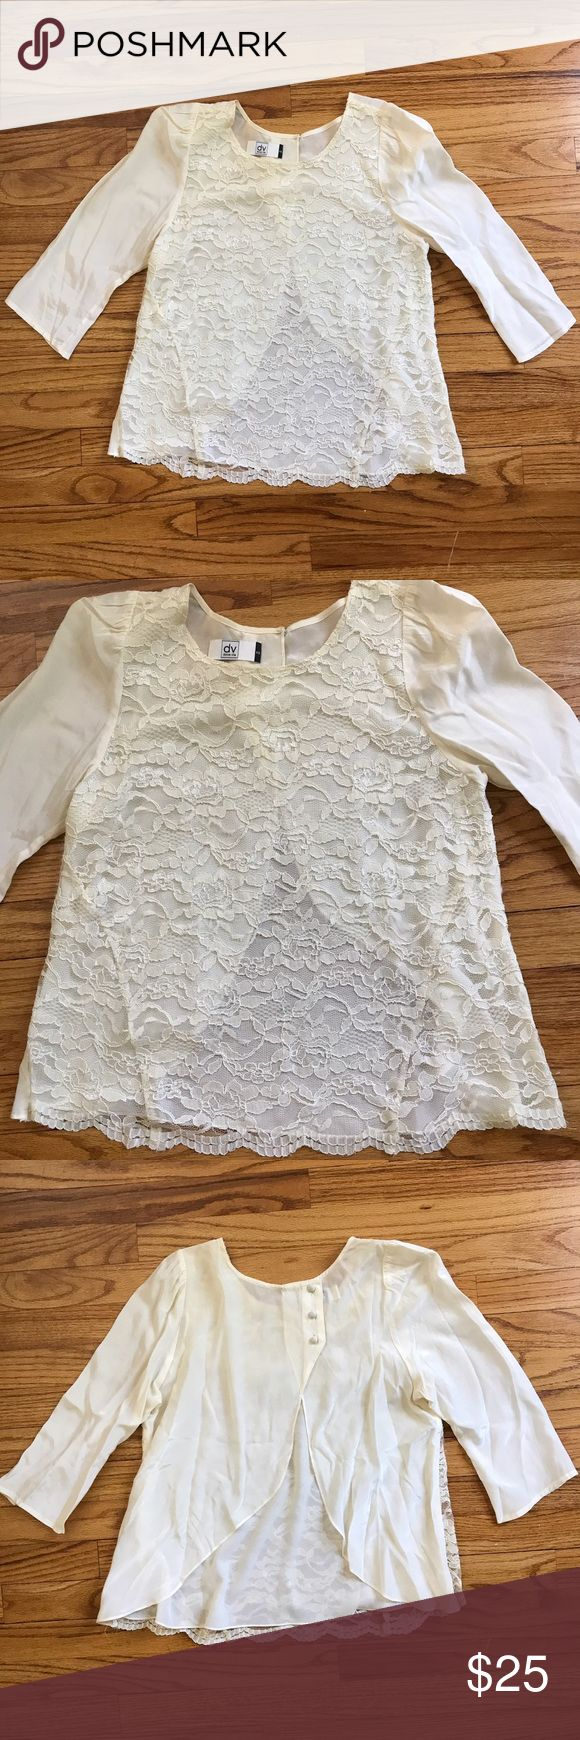 Lace Blouse Open back lace top • worn once • new condition • floral lace pattern • off white color • has an extra layer but still need to wear tank top underneath or bralette ⚡️ fast shipping Dolce Vita Tops Blouses